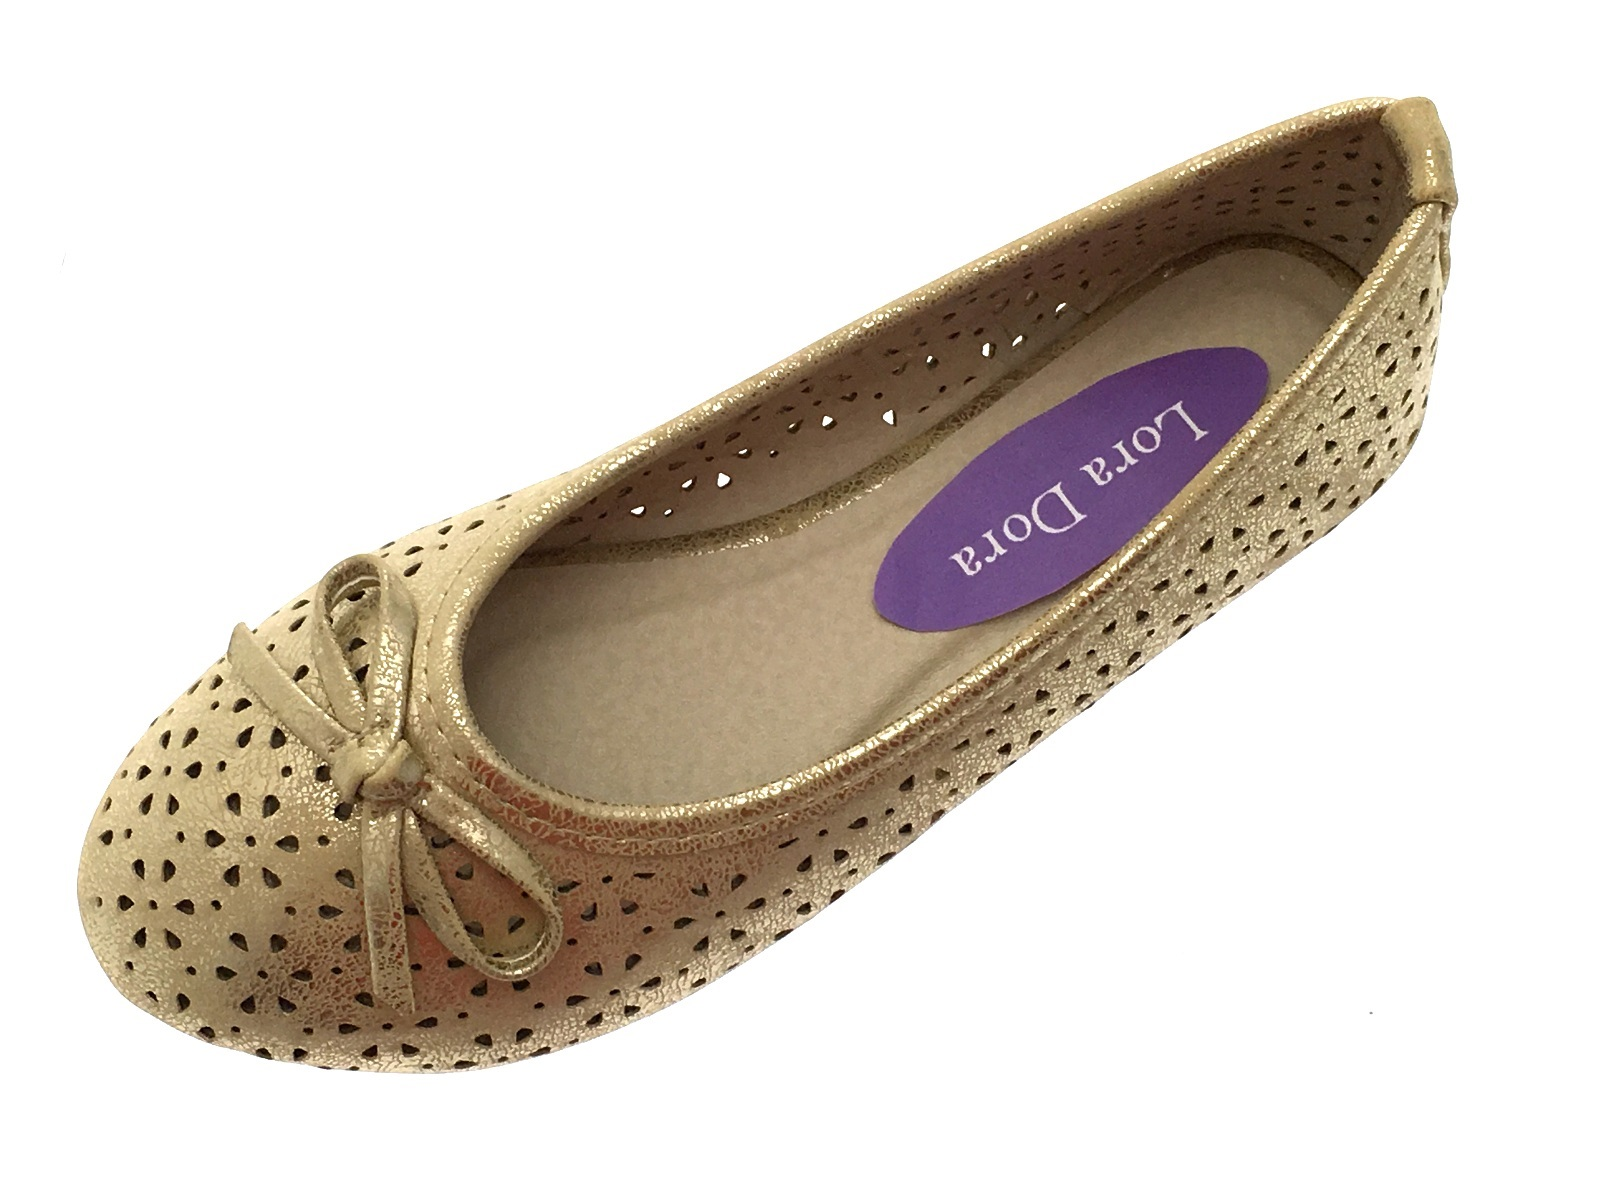 Girls Metallic Cut Out Ballet Pumps Flat Kids Slip On Party Wedding Shoes Size